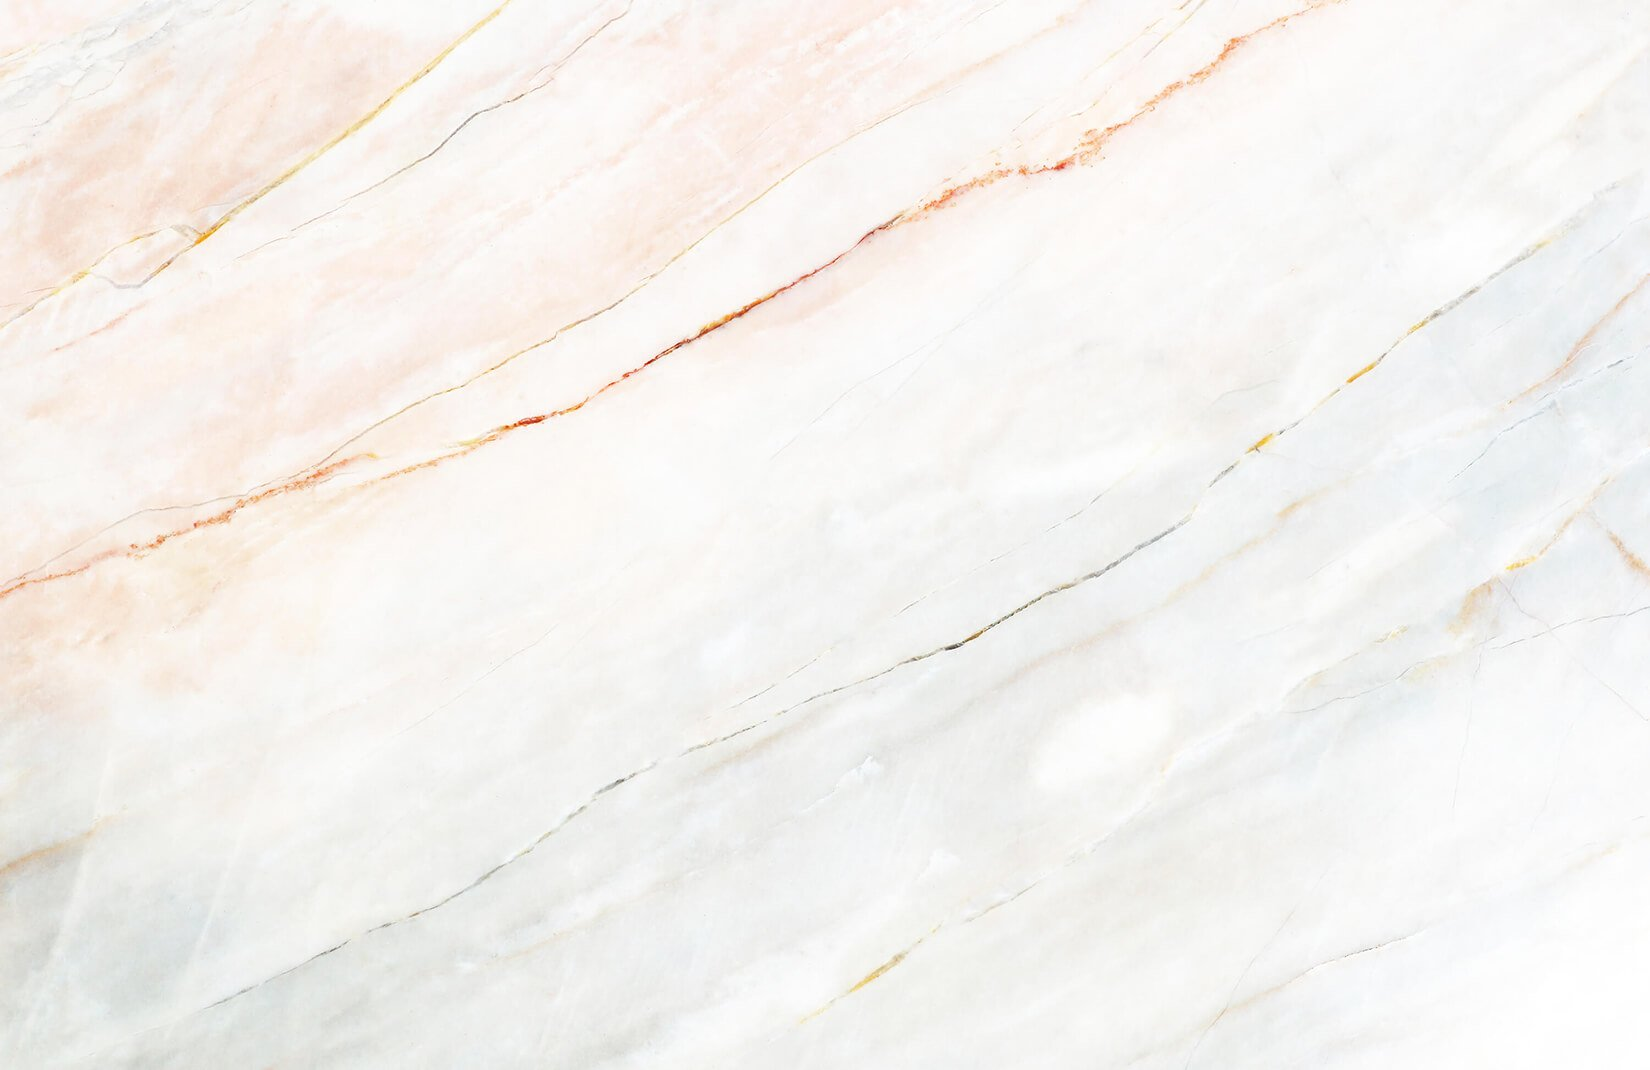 Rose Gold White Marble 40135 Hd Wallpaper Backgrounds Download